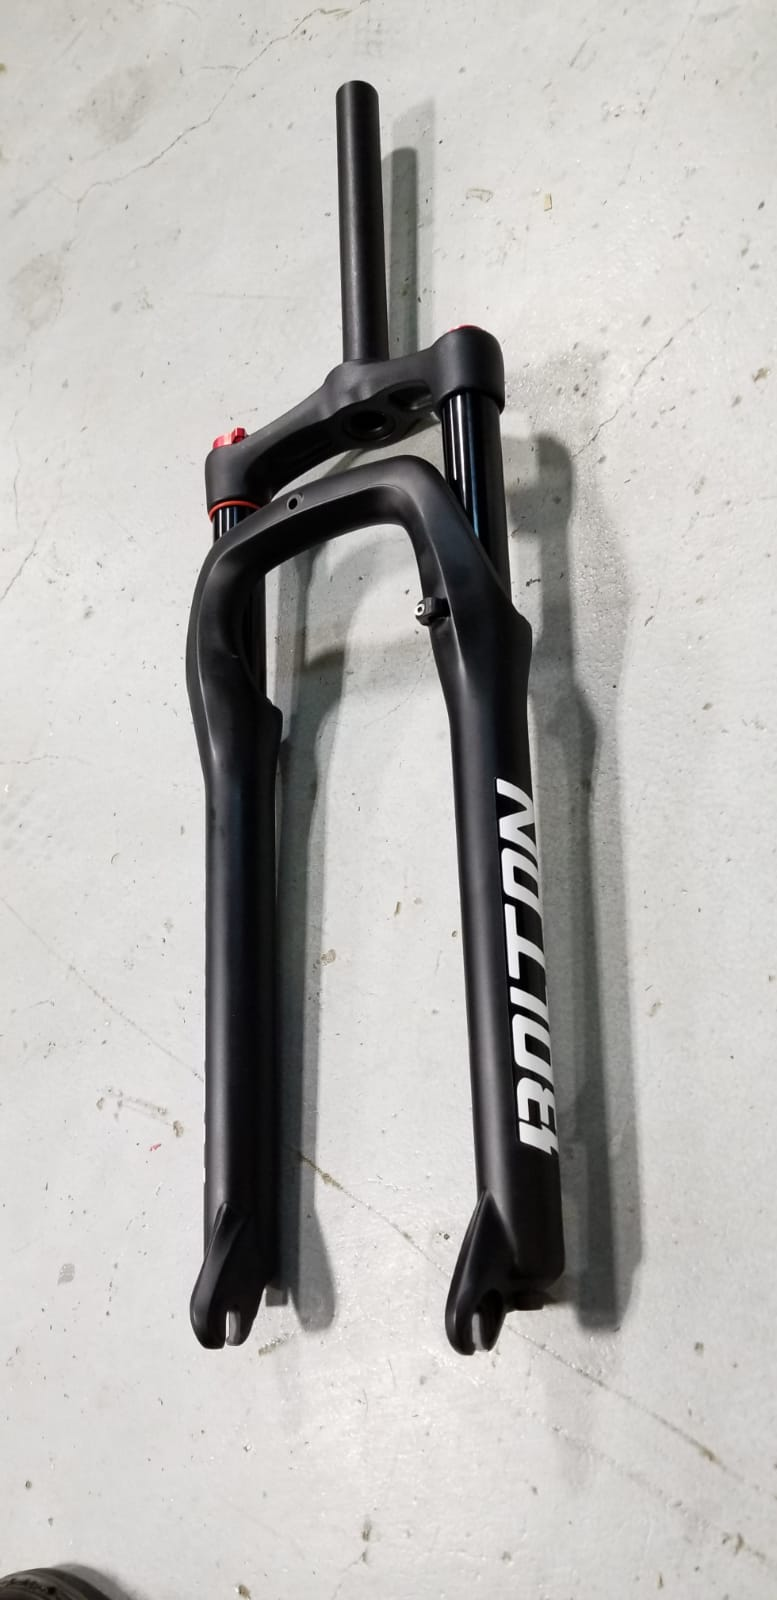 Fat Bike Suspension Fork - In Stock!